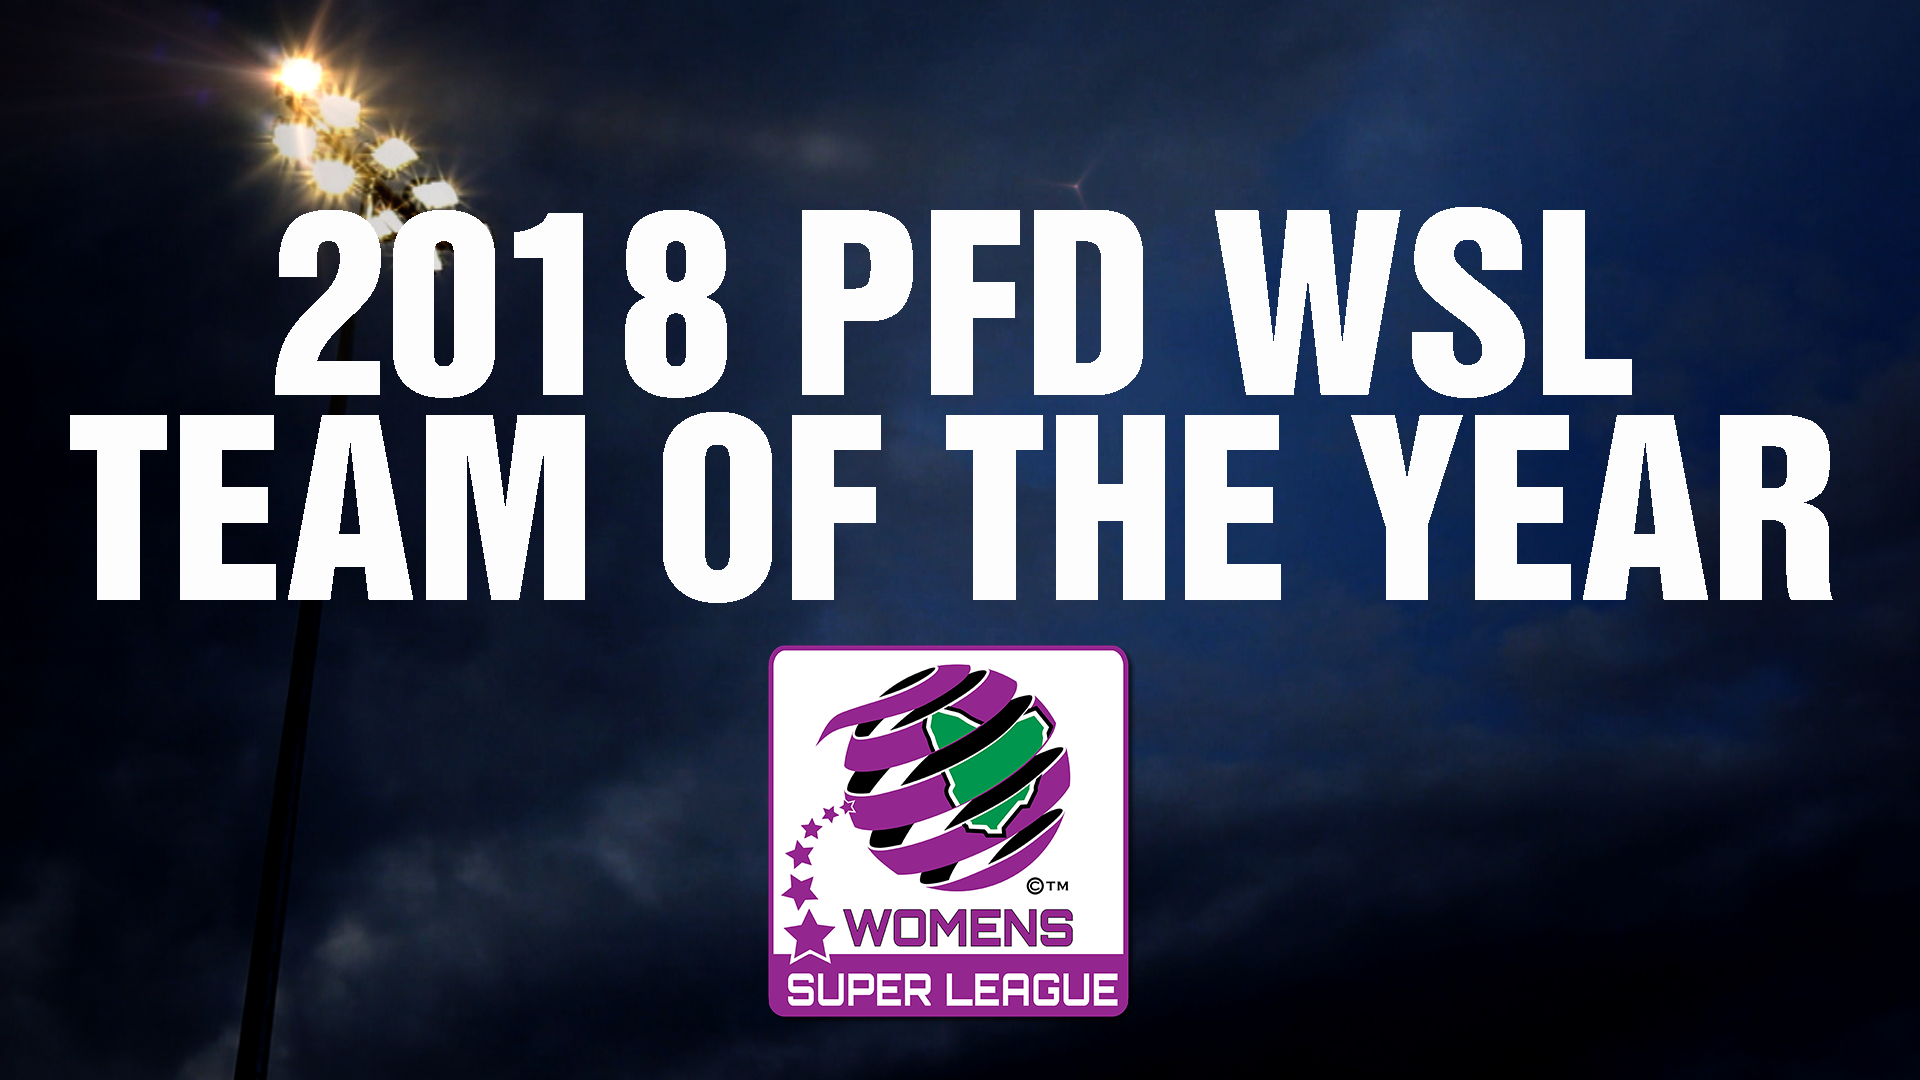 2018 Super League Team of the Year   Slice of Cheese